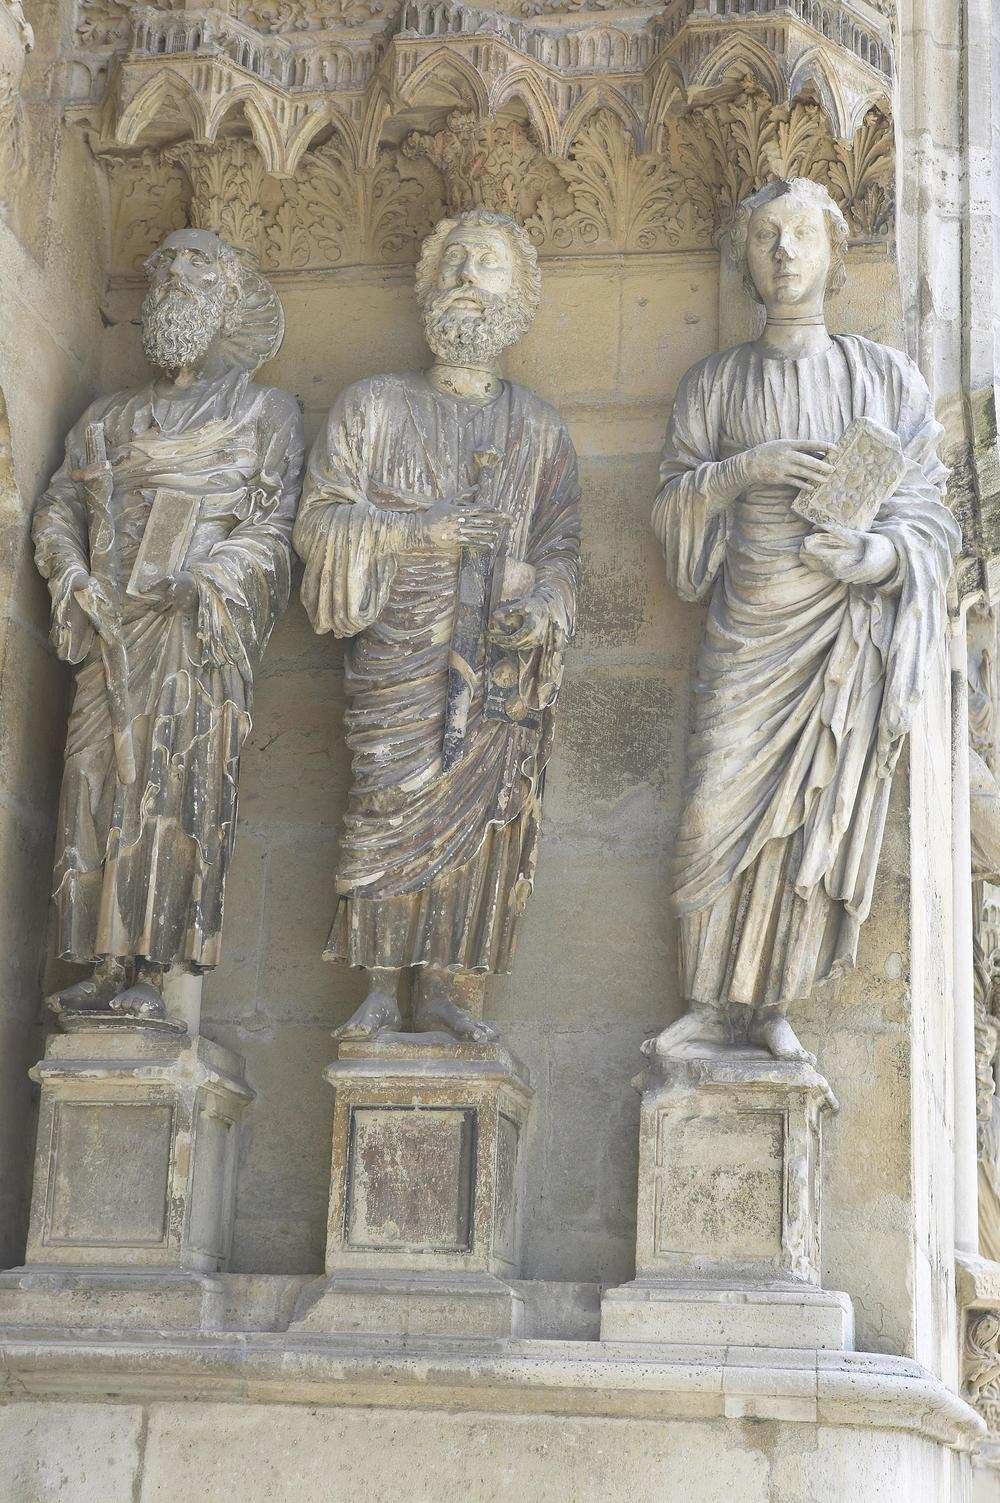 Jamb Figures: Saints Paul, James the Greater, and John the Evangelist